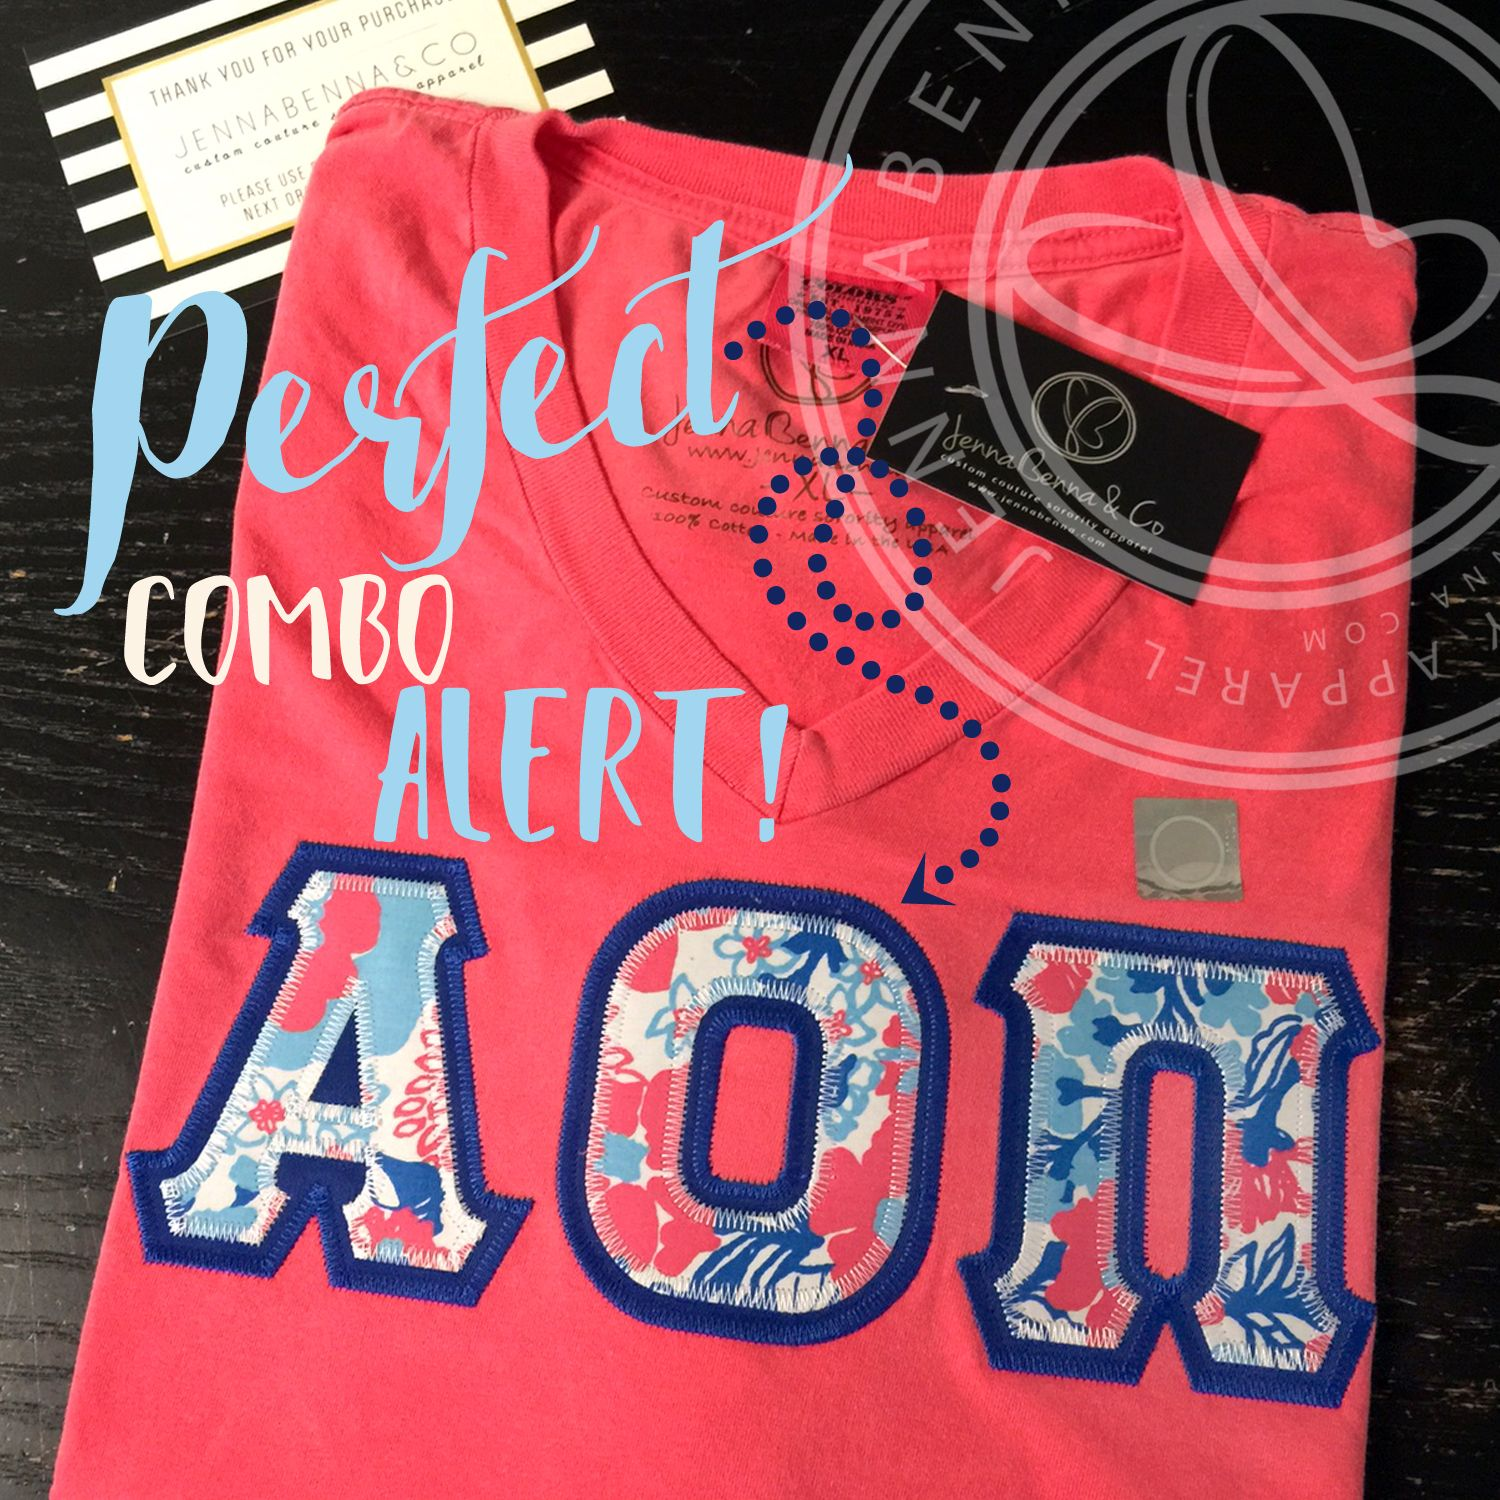 SHELL YEAH! Cheers to an awesome perfect combo!!!! Jessica G., from TN, did a phenomenal job pairing these colors up! This is a Comfort Colors Unisex V-Neck Tee in Watermelon with Lilly White Shell Yeah & Royal Blue Twill. - - - #JennaBennaCo #AlphaOmicronPi #AOII #lettersoftheday #LOTD #LiveLoveLetters